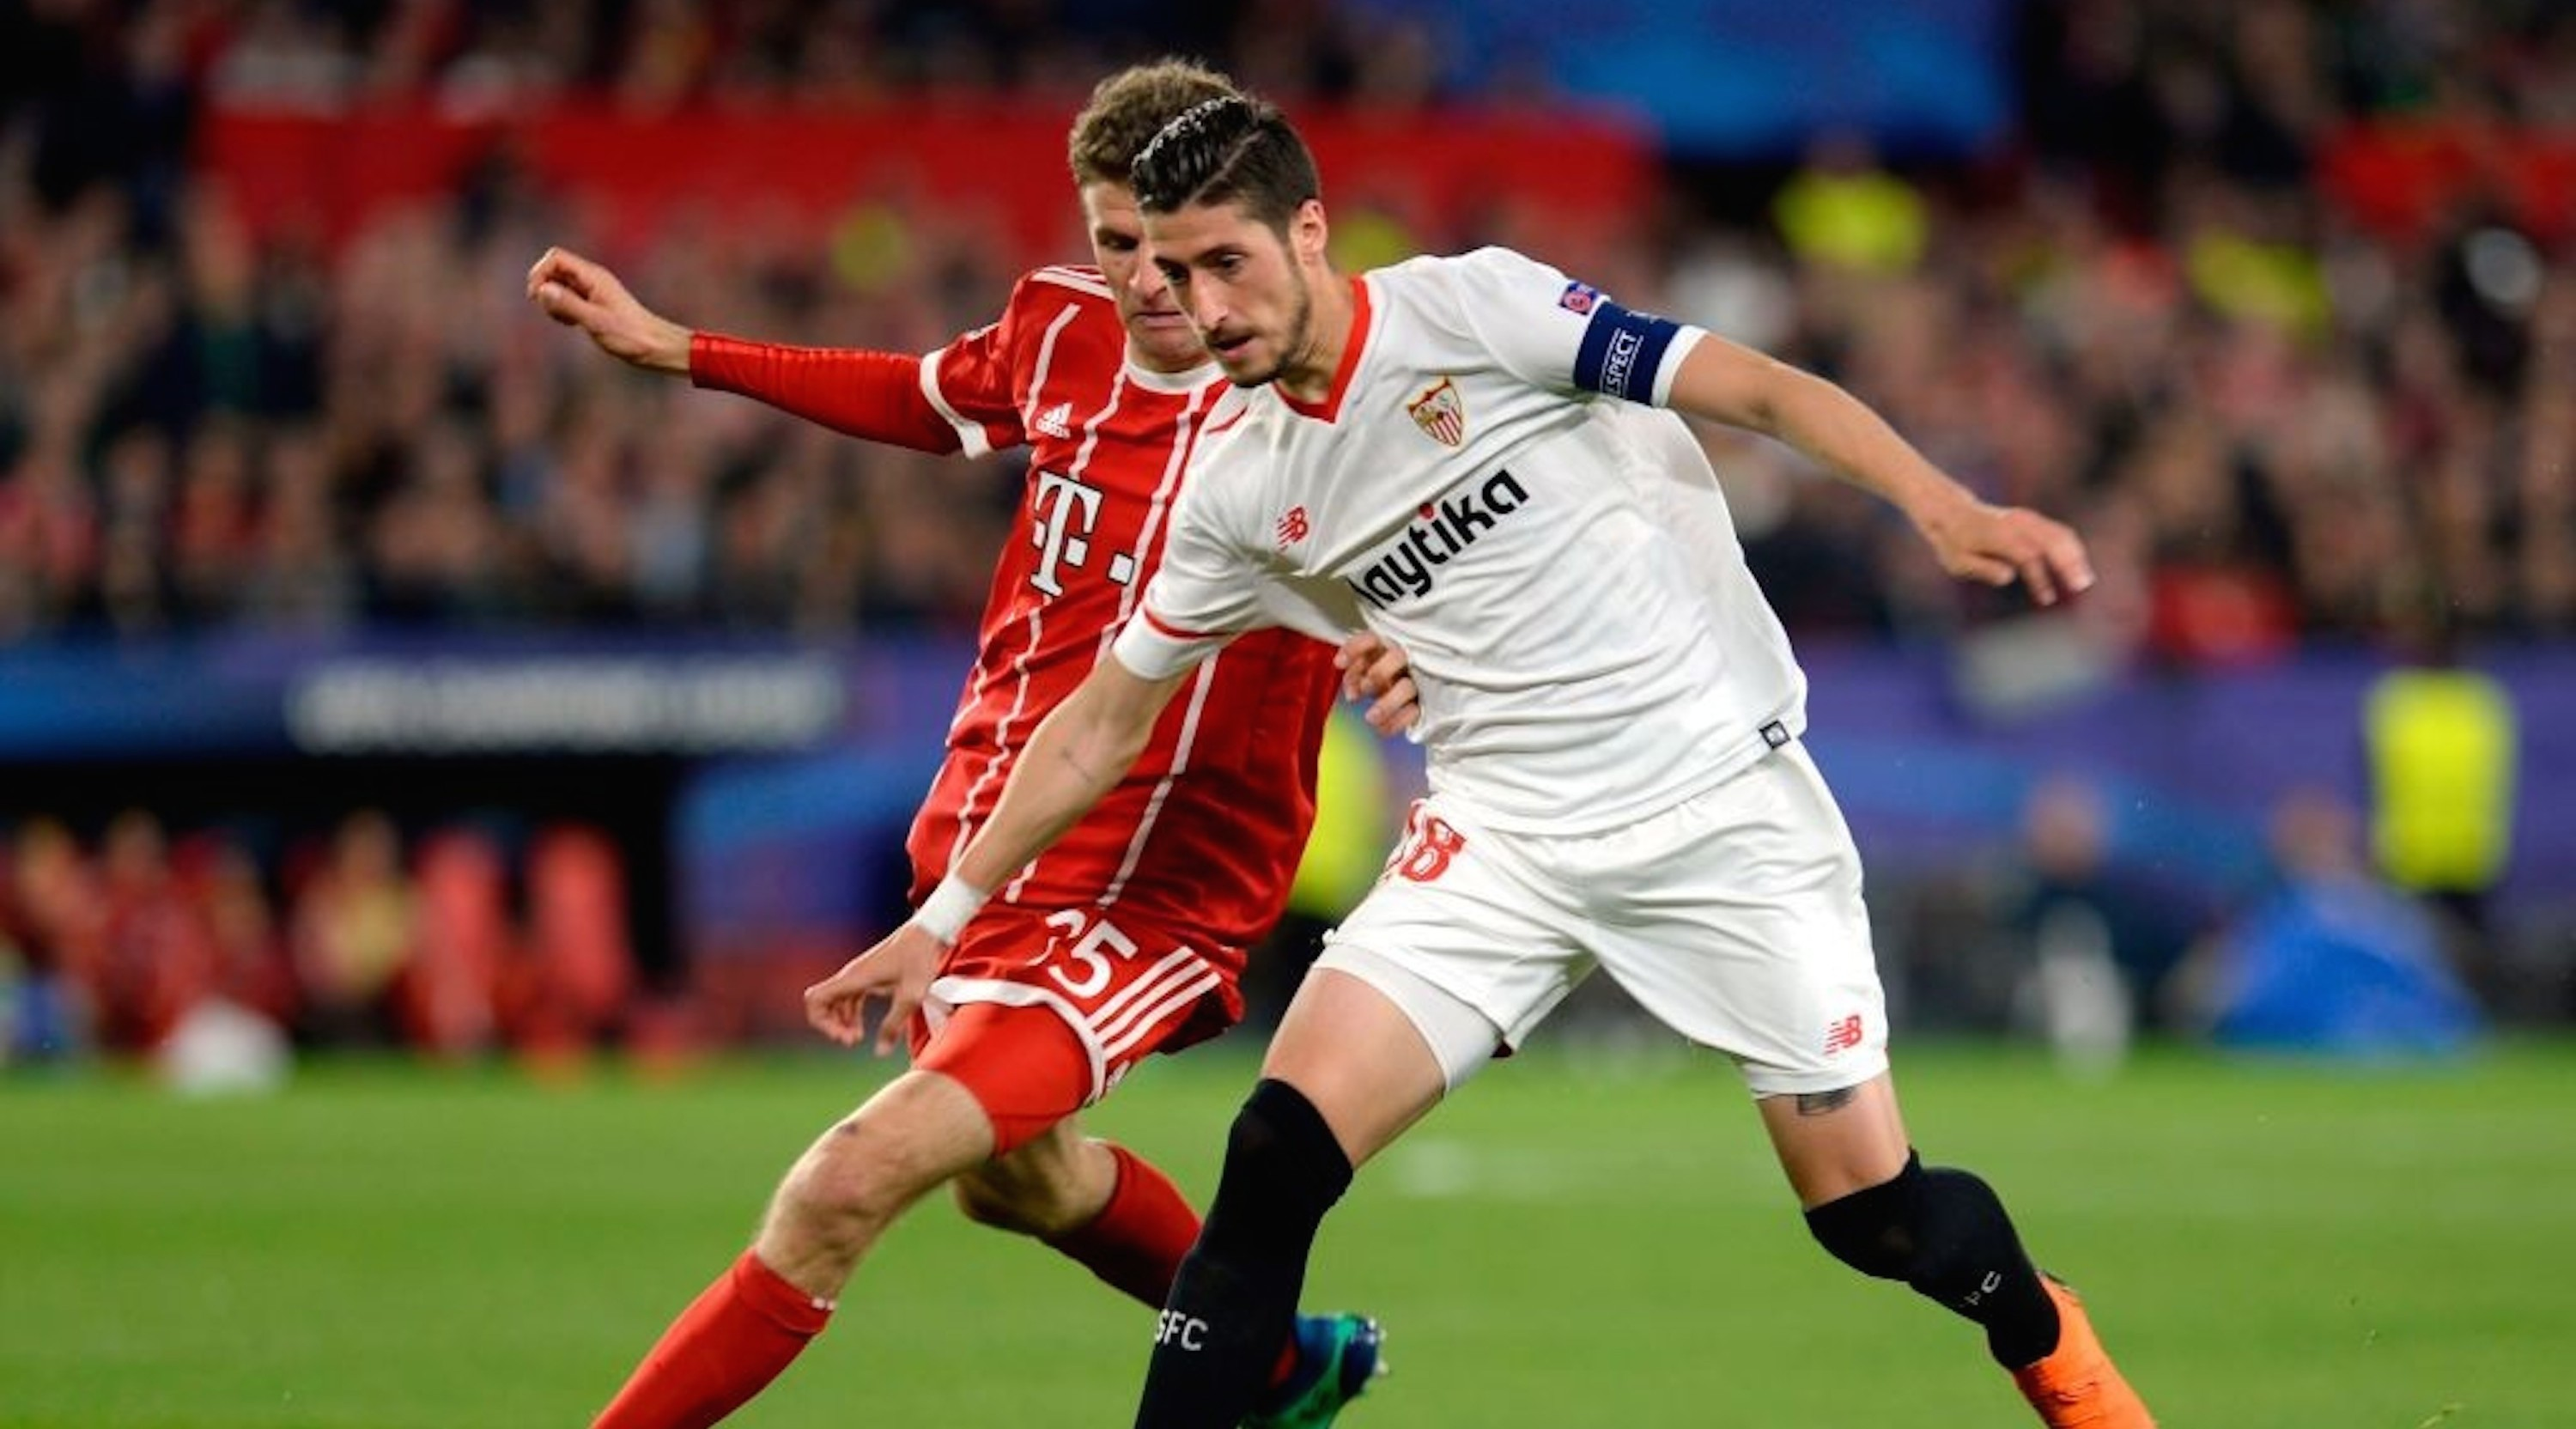 Bayern Munich's German forward Thomas Mueller (L) vies with Sevilla's Spanish defender Sergio Escudero during the UEFA Champions League quarter-final first leg football match between Sevilla FC and Bayern Munich at the Ramon Sanchez Pizjuan Stadium in Sevilla on April 3, 2018. / AFP PHOTO / CRISTINA QUICLER (Photo credit should read CRISTINA QUICLER/AFP/Getty Images)